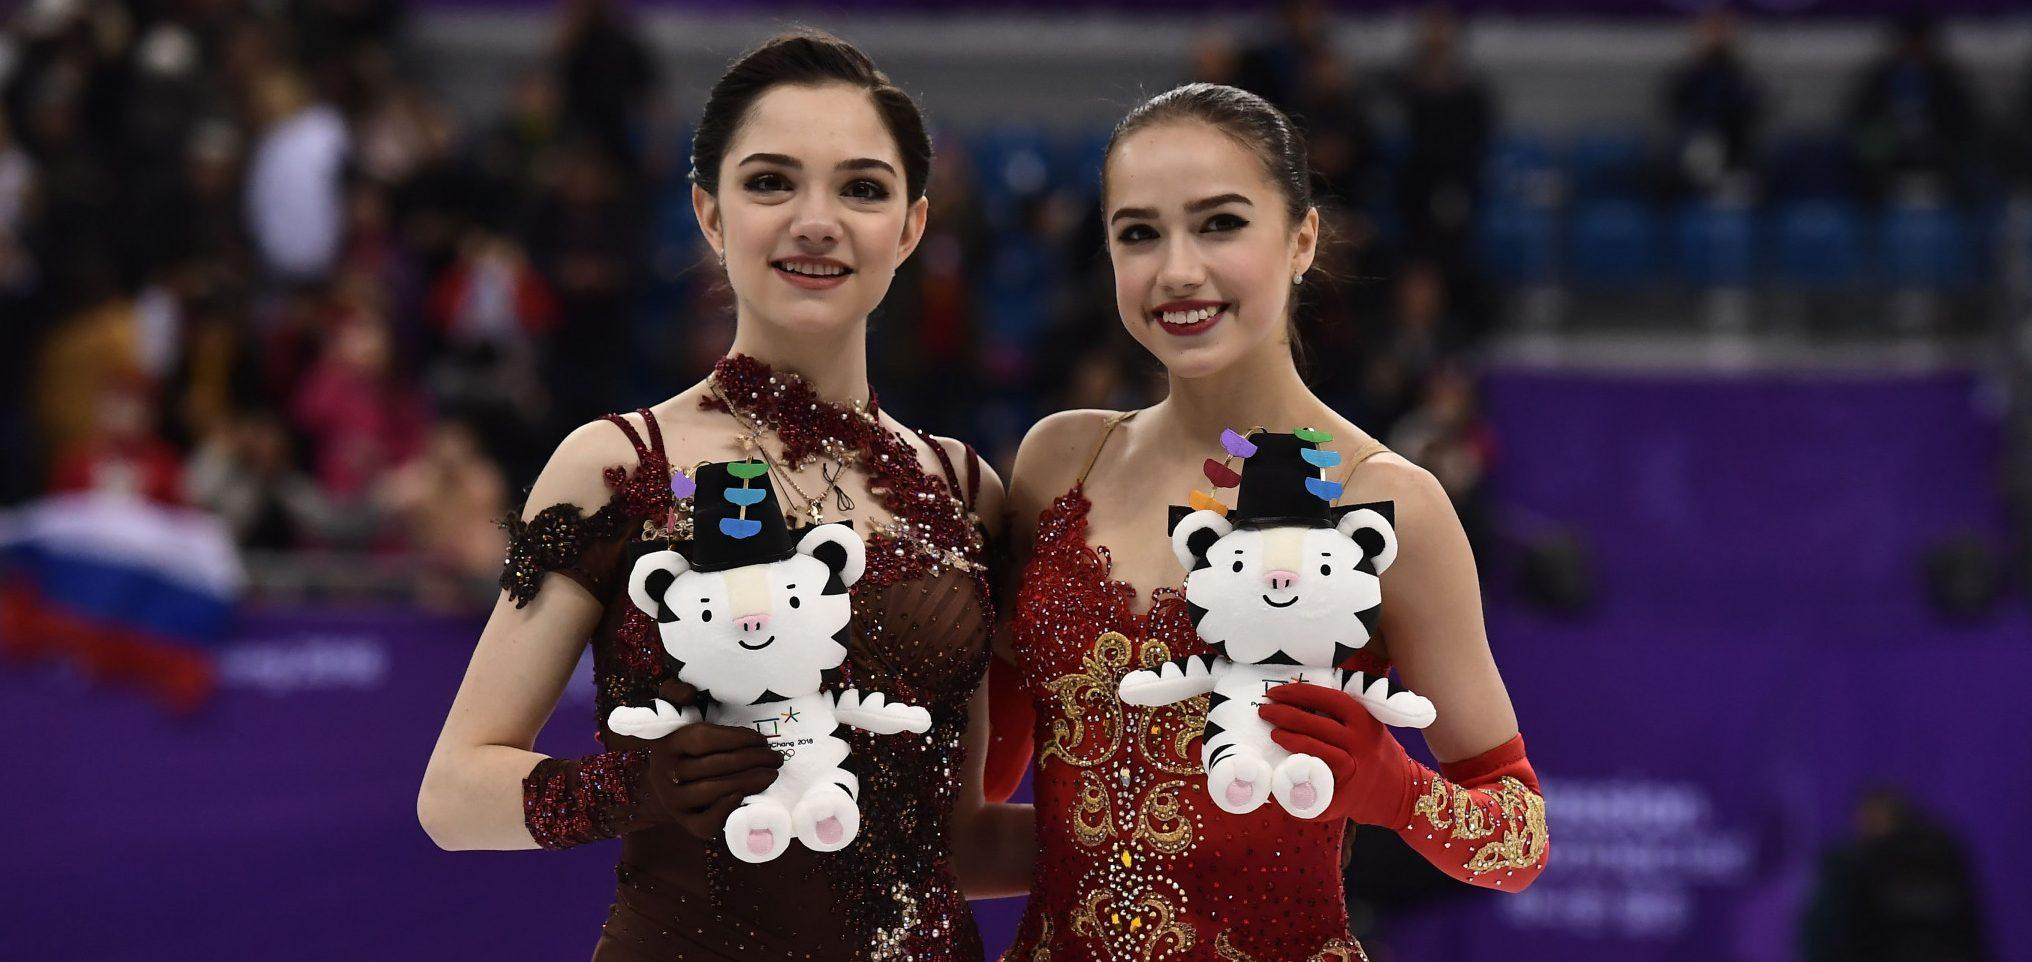 Artistry versus athleticism at the 2018 Olympic Games